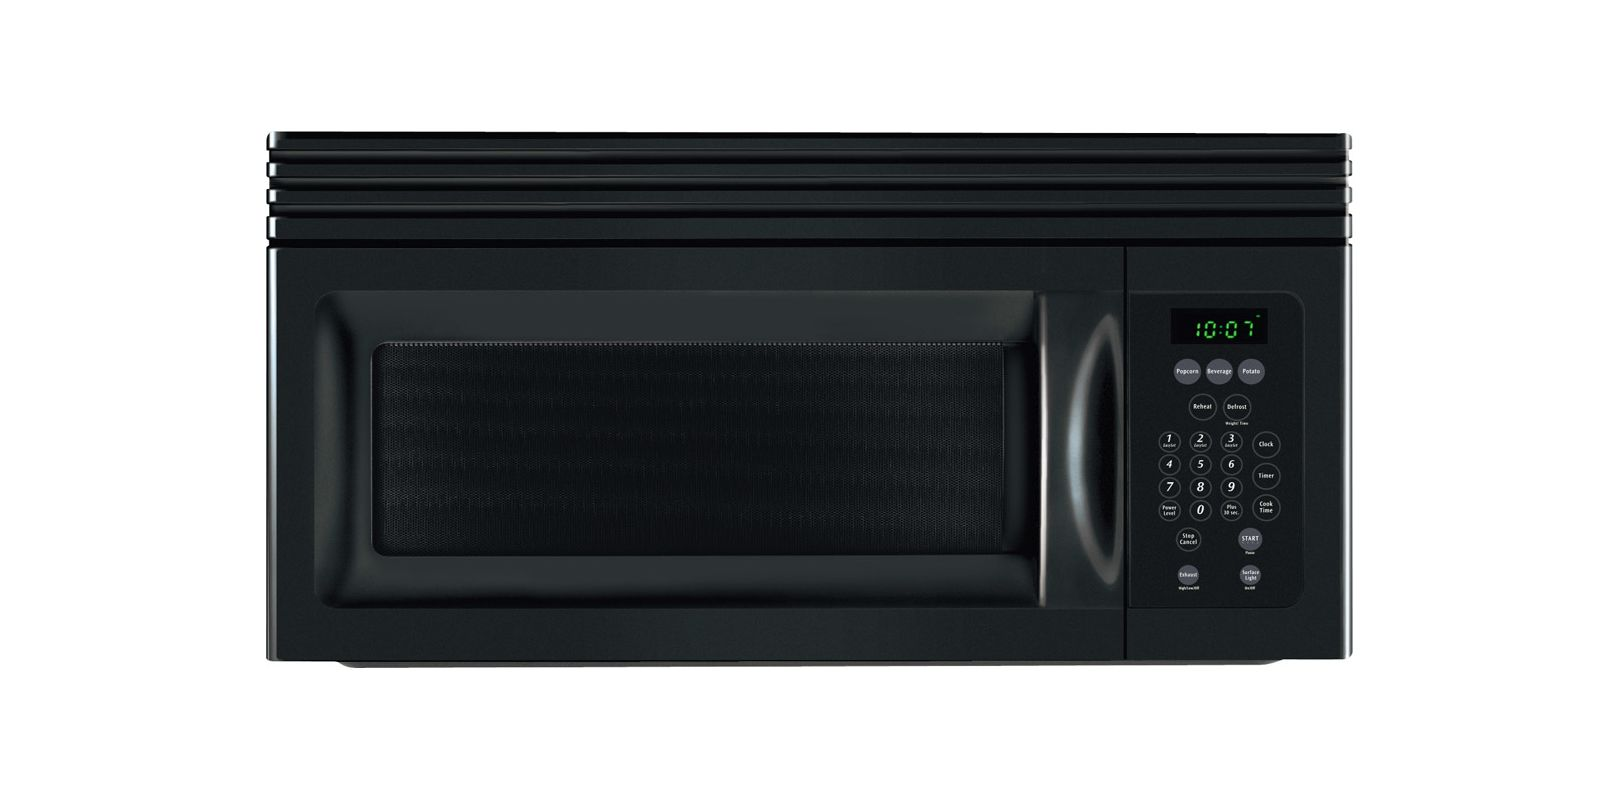 Frigidaire Mwv150kb Black 1 5 Cubic Foot Over The Range